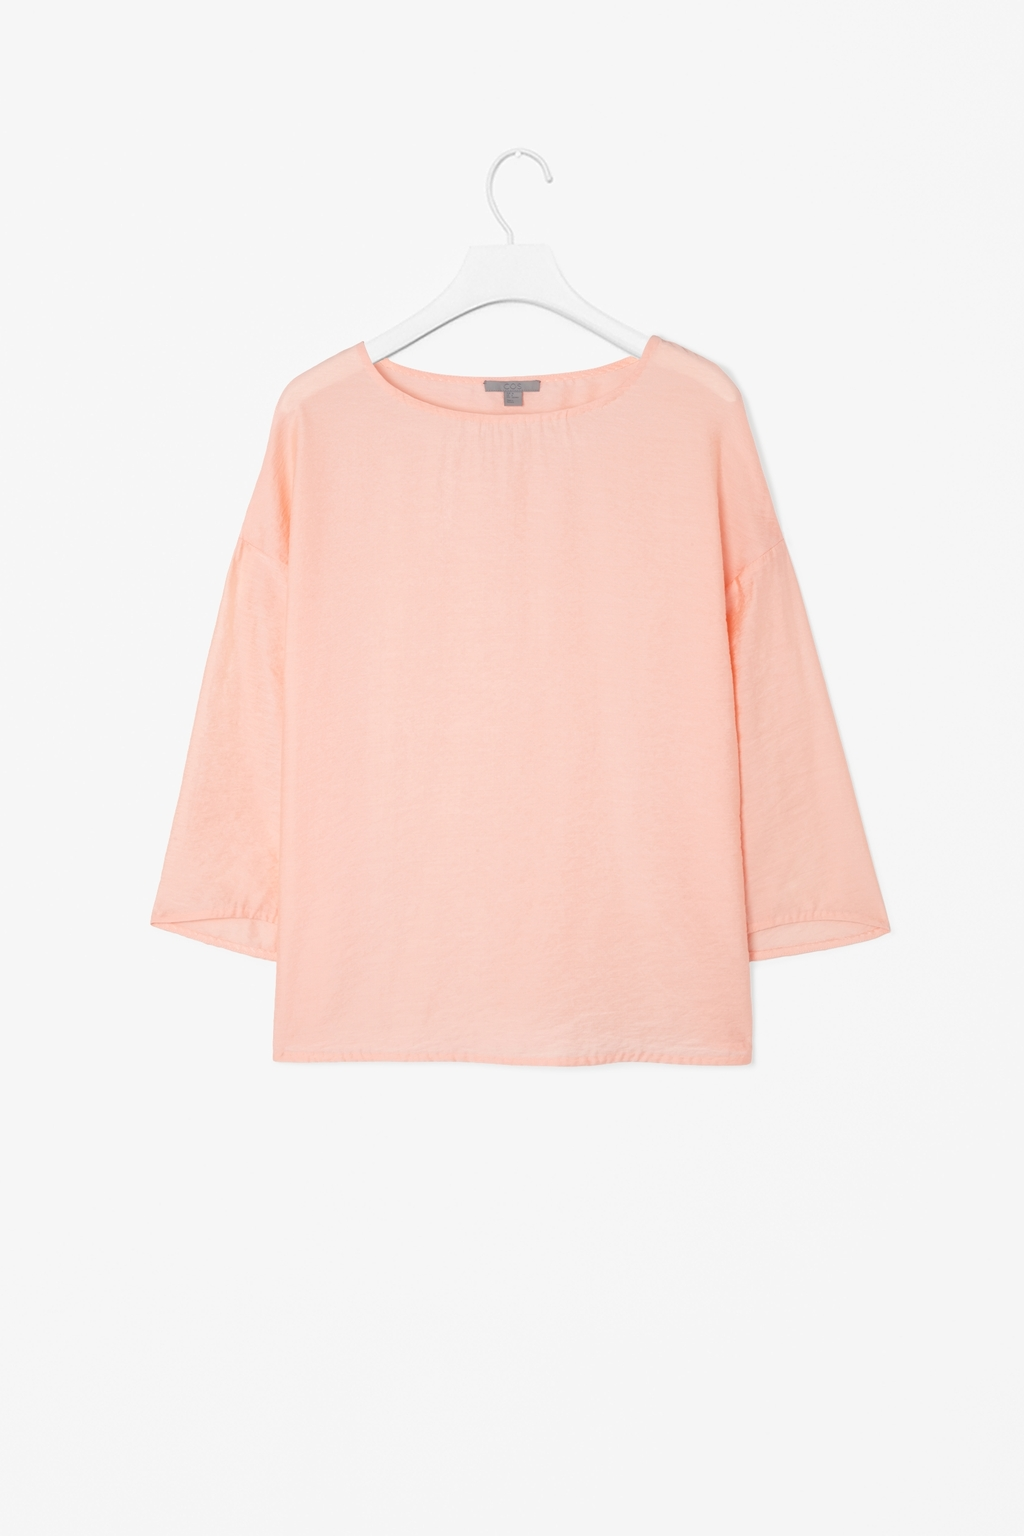 Wide Sleeved Top - neckline: round neck; pattern: plain; style: blouse; predominant colour: nude; occasions: casual, evening; length: standard; fit: loose; sleeve length: 3/4 length; sleeve style: standard; texture group: cotton feel fabrics; pattern type: fabric; fibres: viscose/rayon - mix; season: s/s 2014